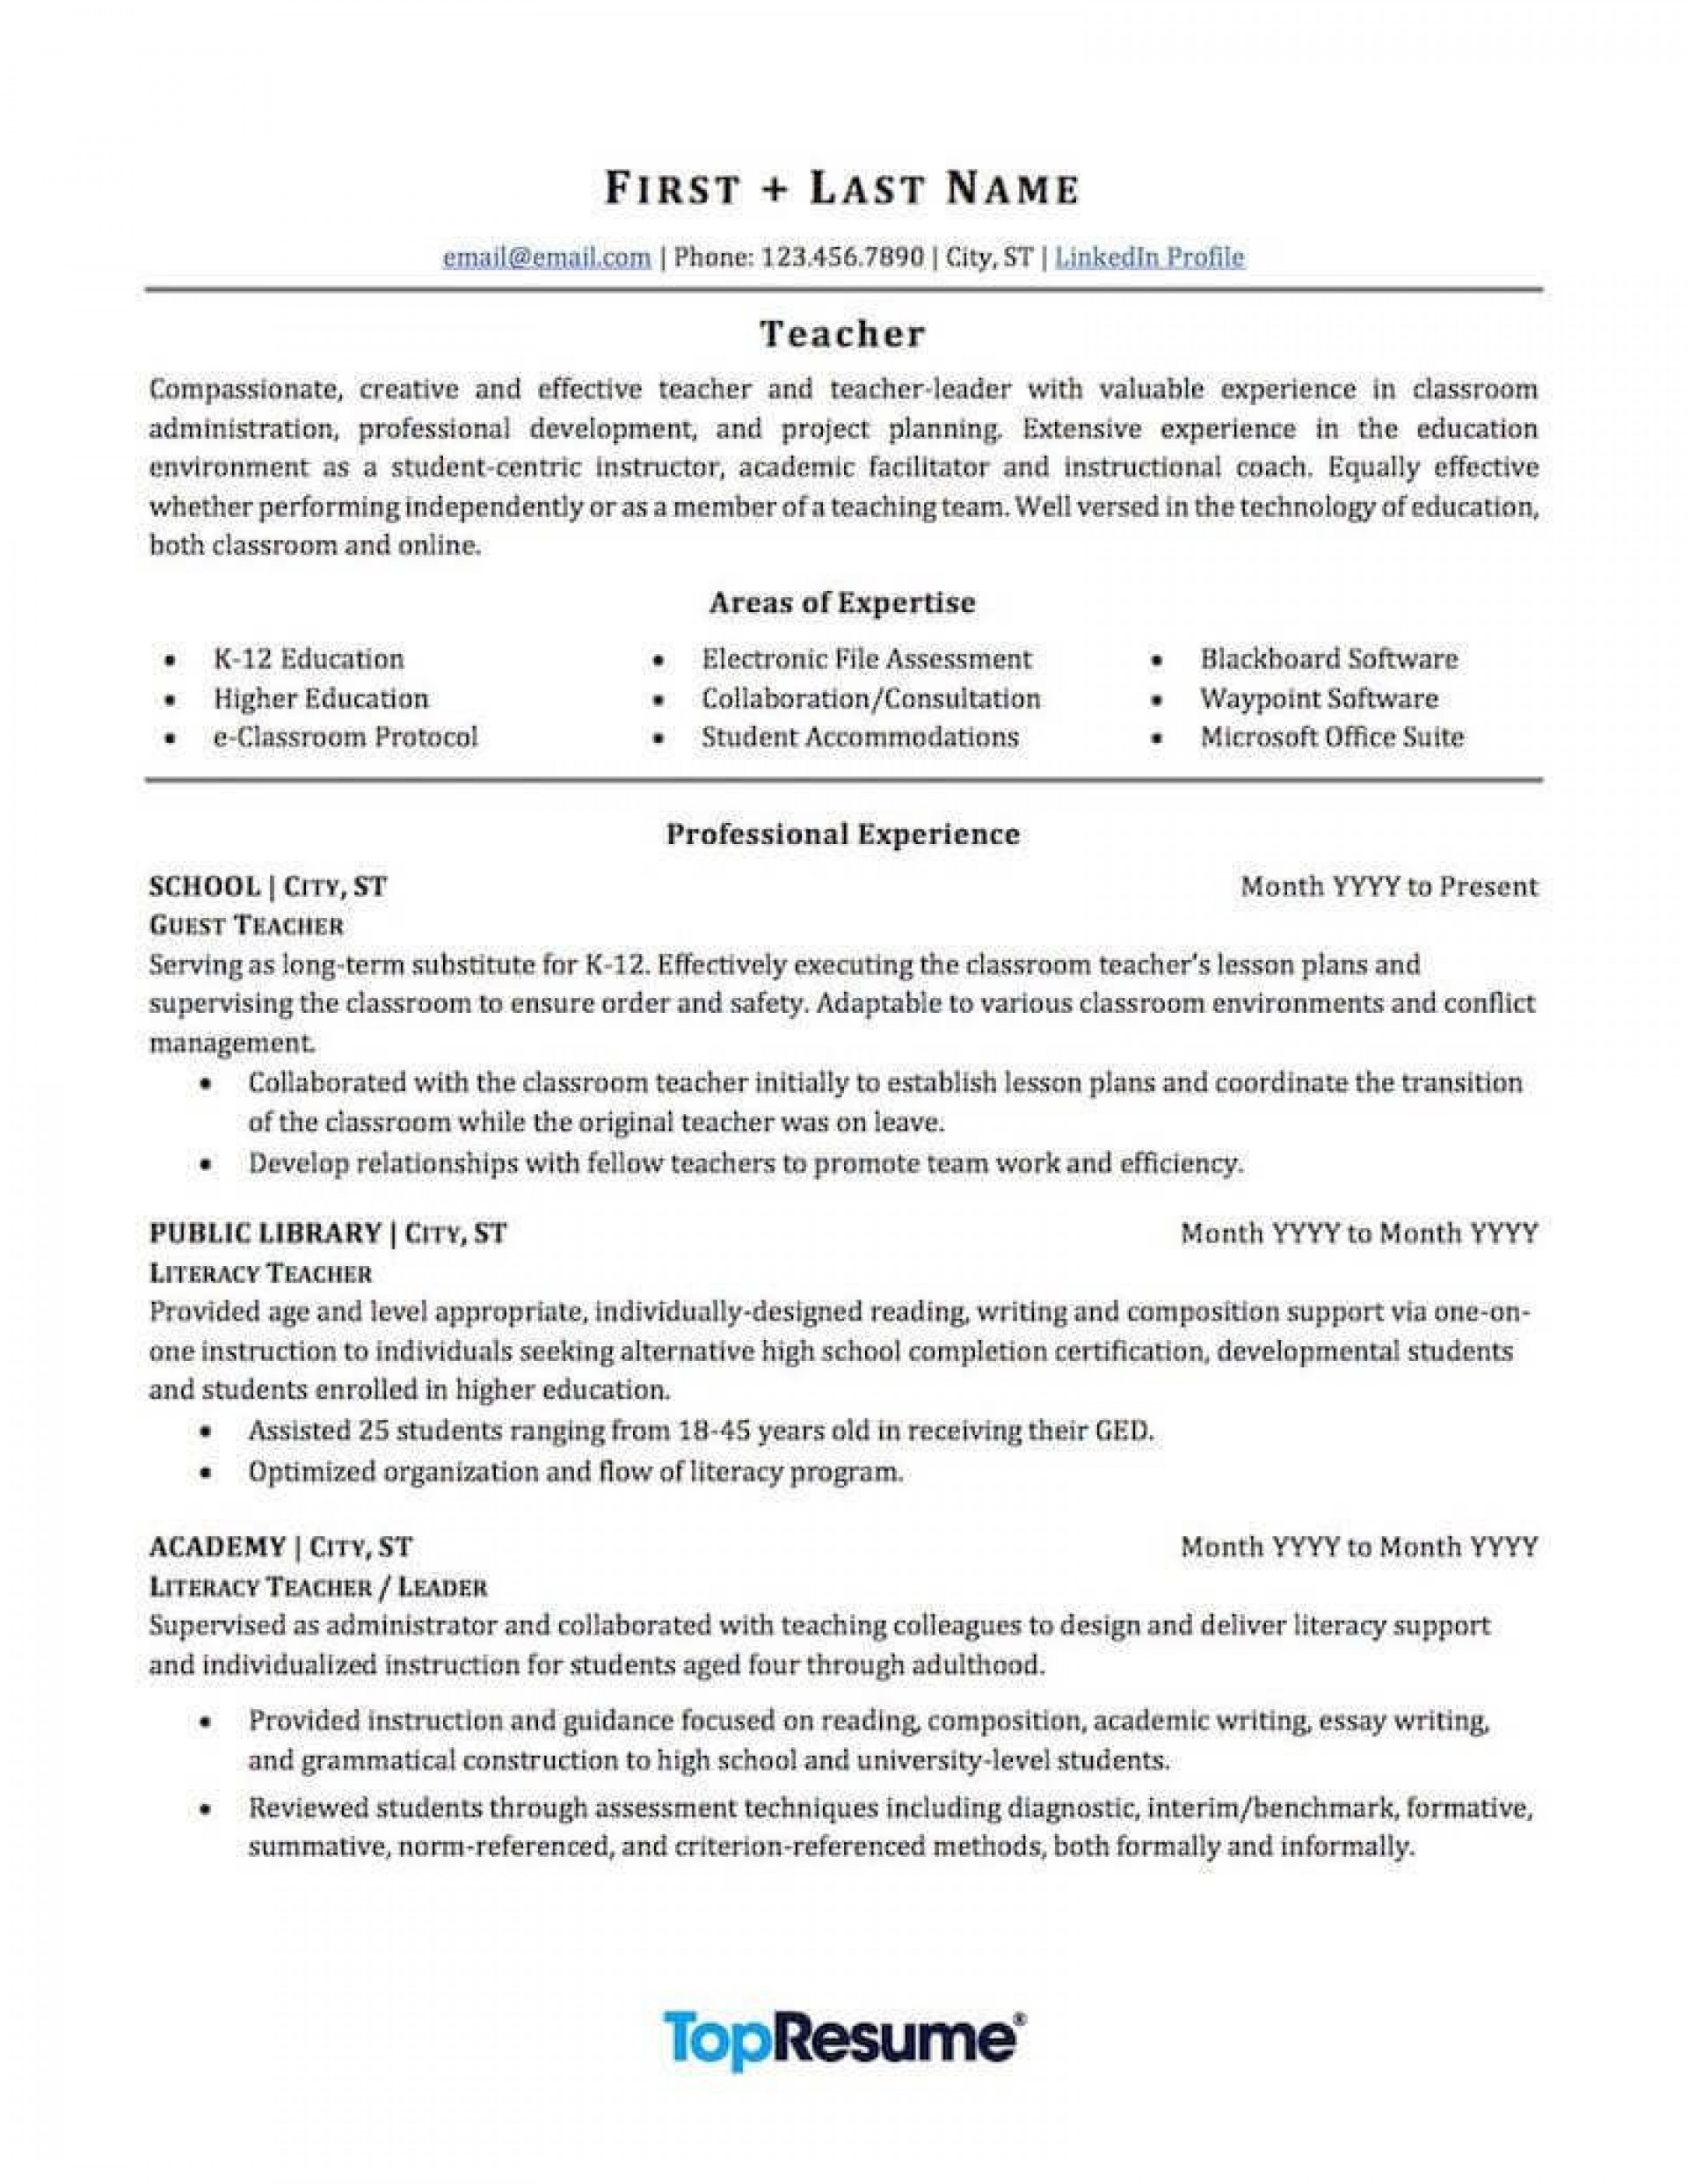 003 Surprising Resume Template For Teacher Sample  Free Download Australia Microsoft Word 20071920